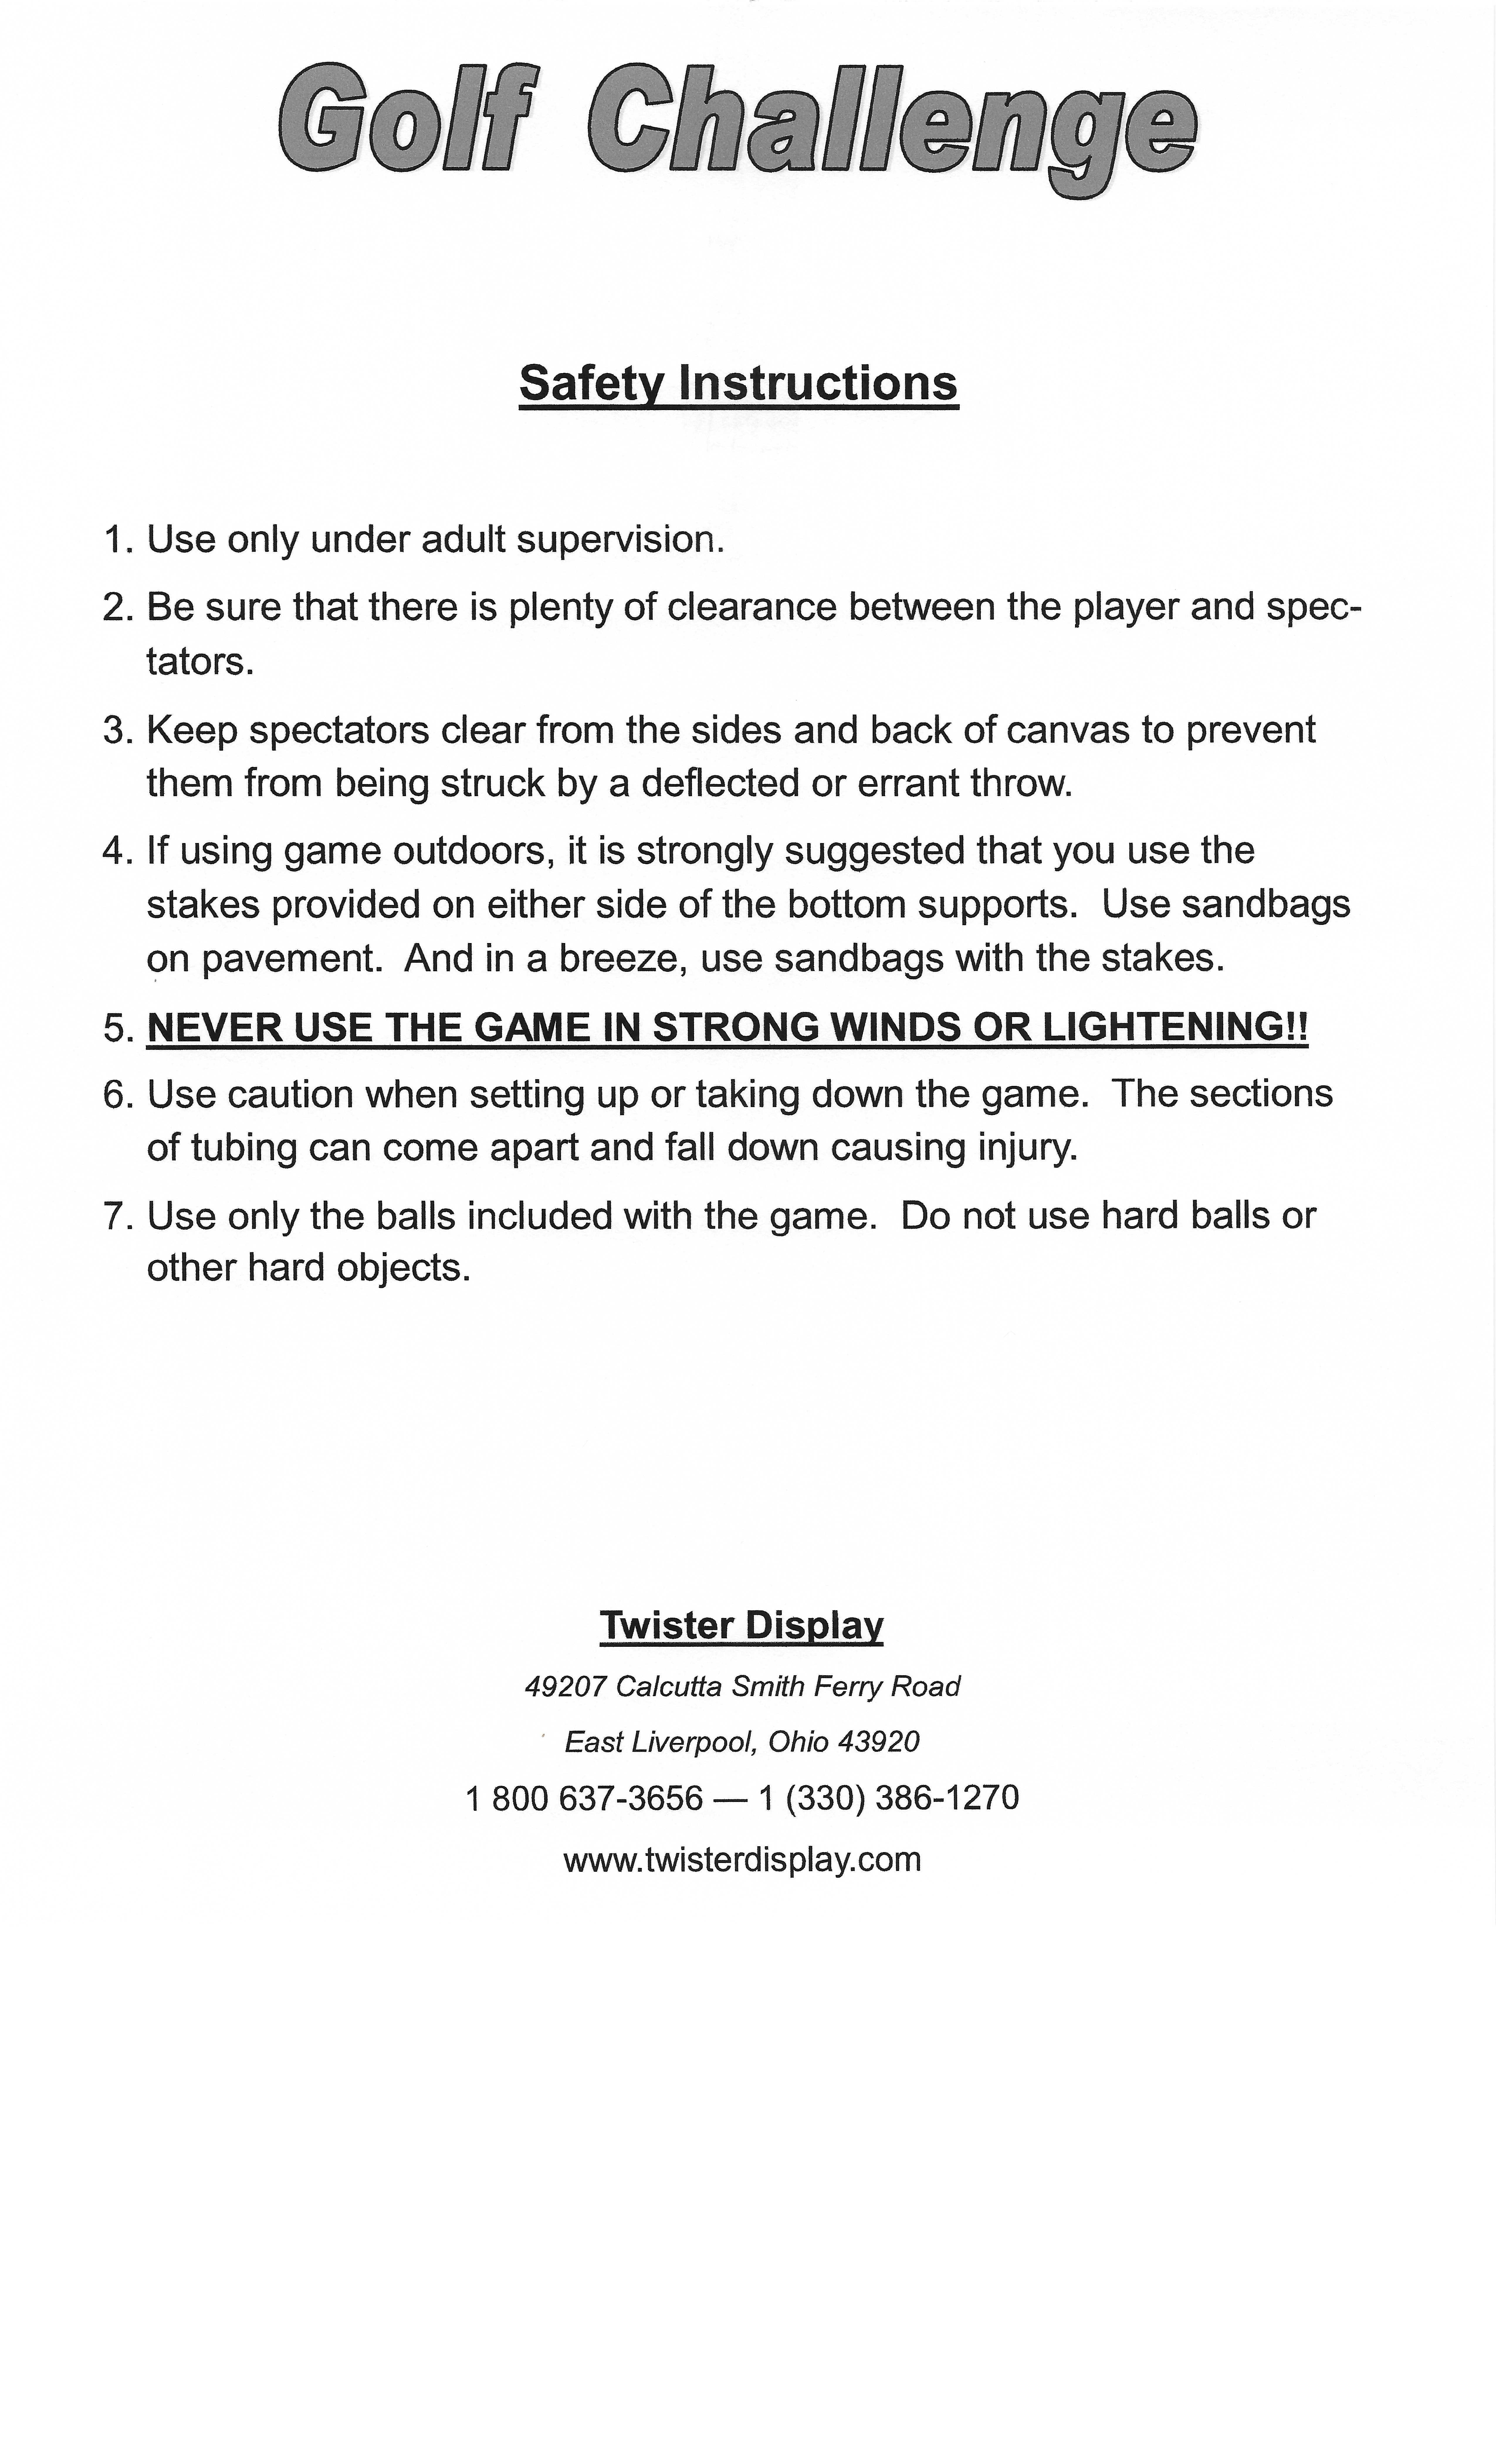 golf-chipping-challenge-instructions0004.jpg